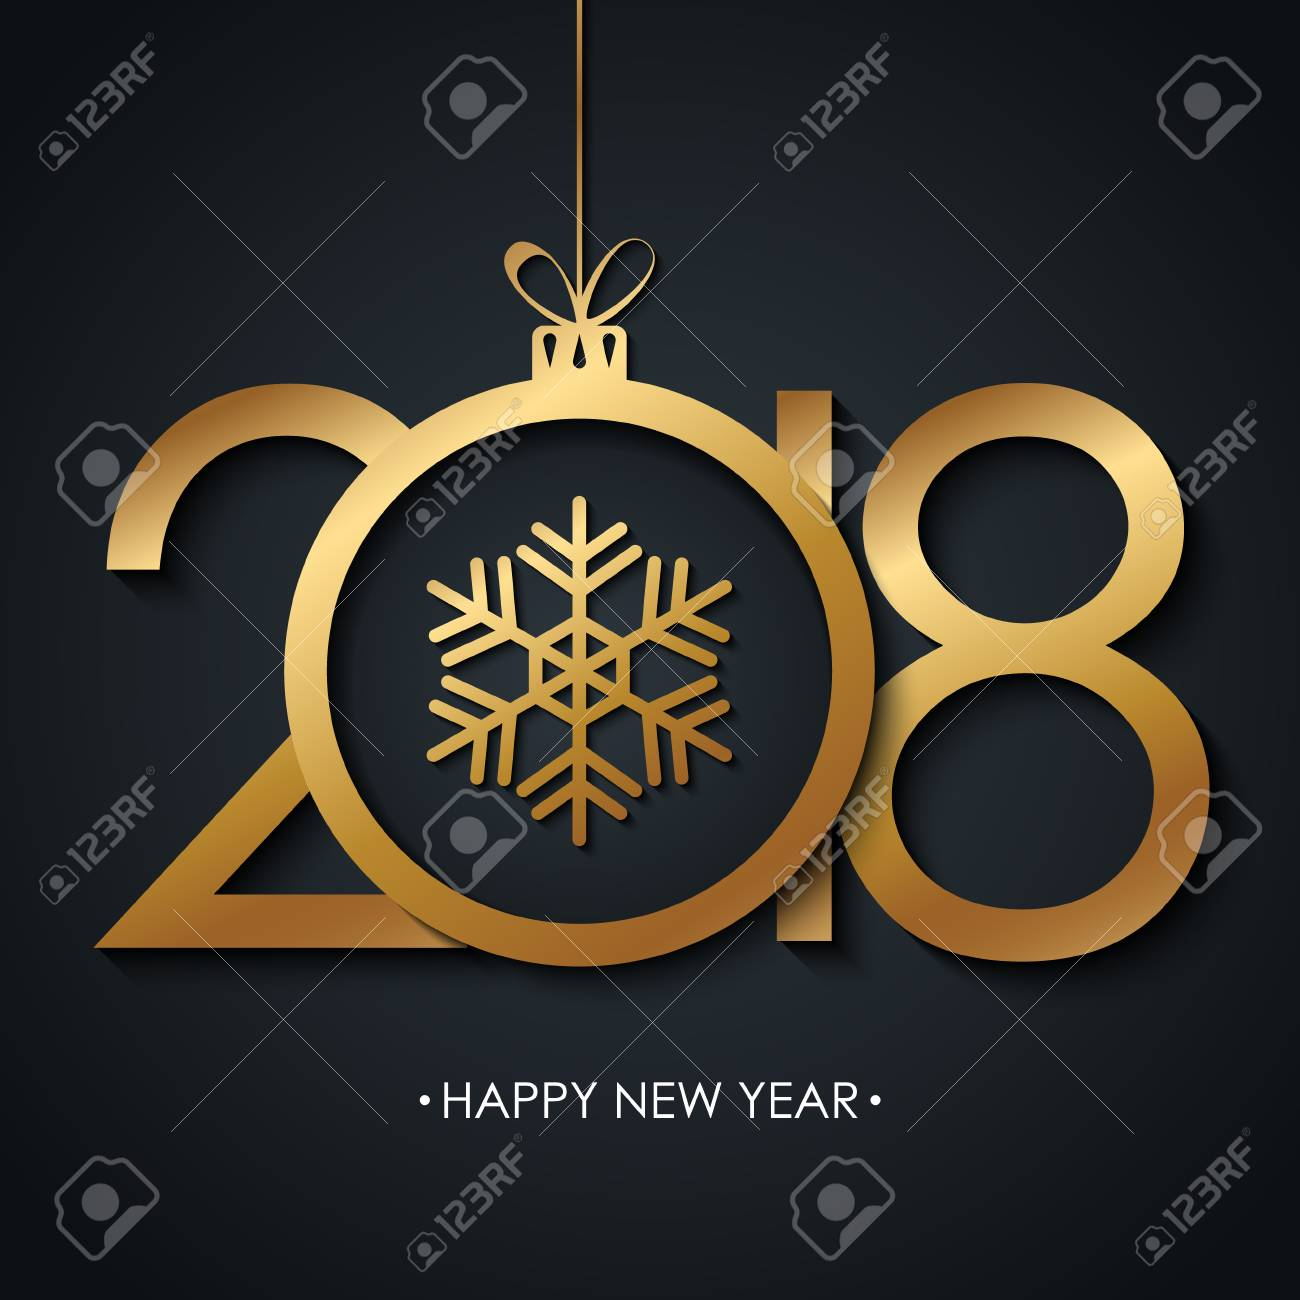 2018 happy new year greeting card with golden christmas ball 2018 happy new year greeting card with golden christmas ball and snowflake on black background m4hsunfo